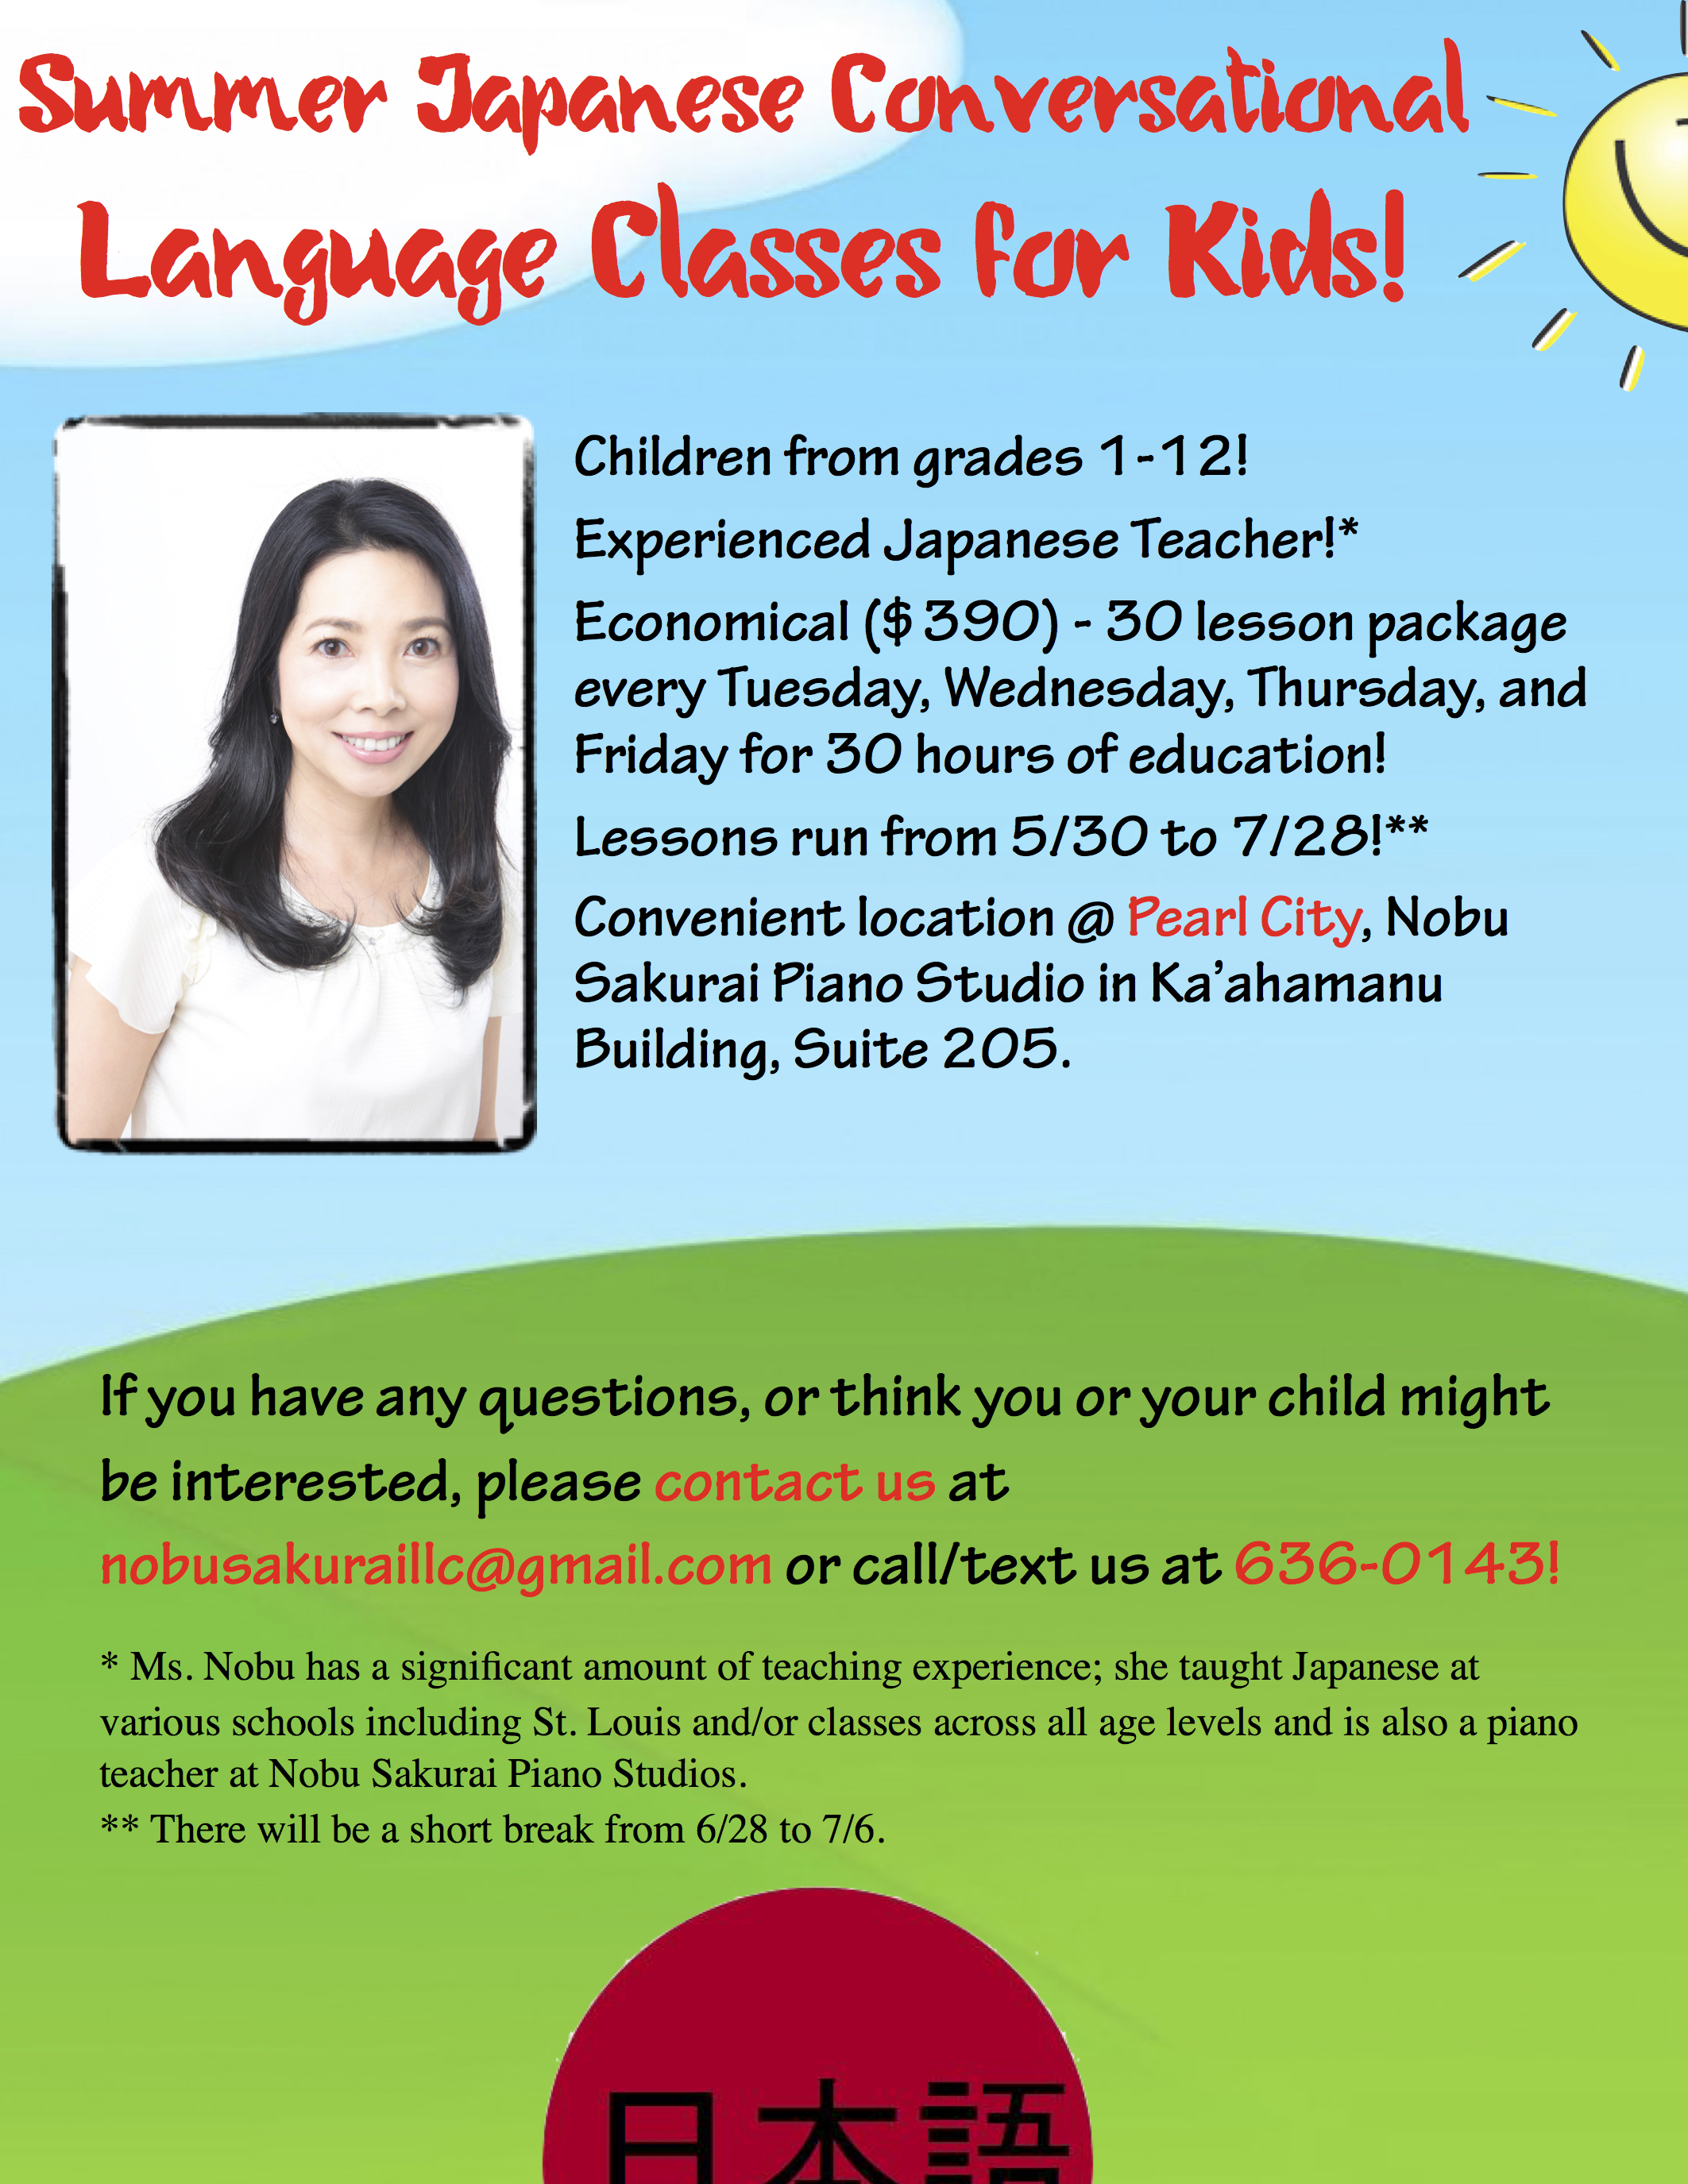 Japanese Conversational Language Classes for Children!